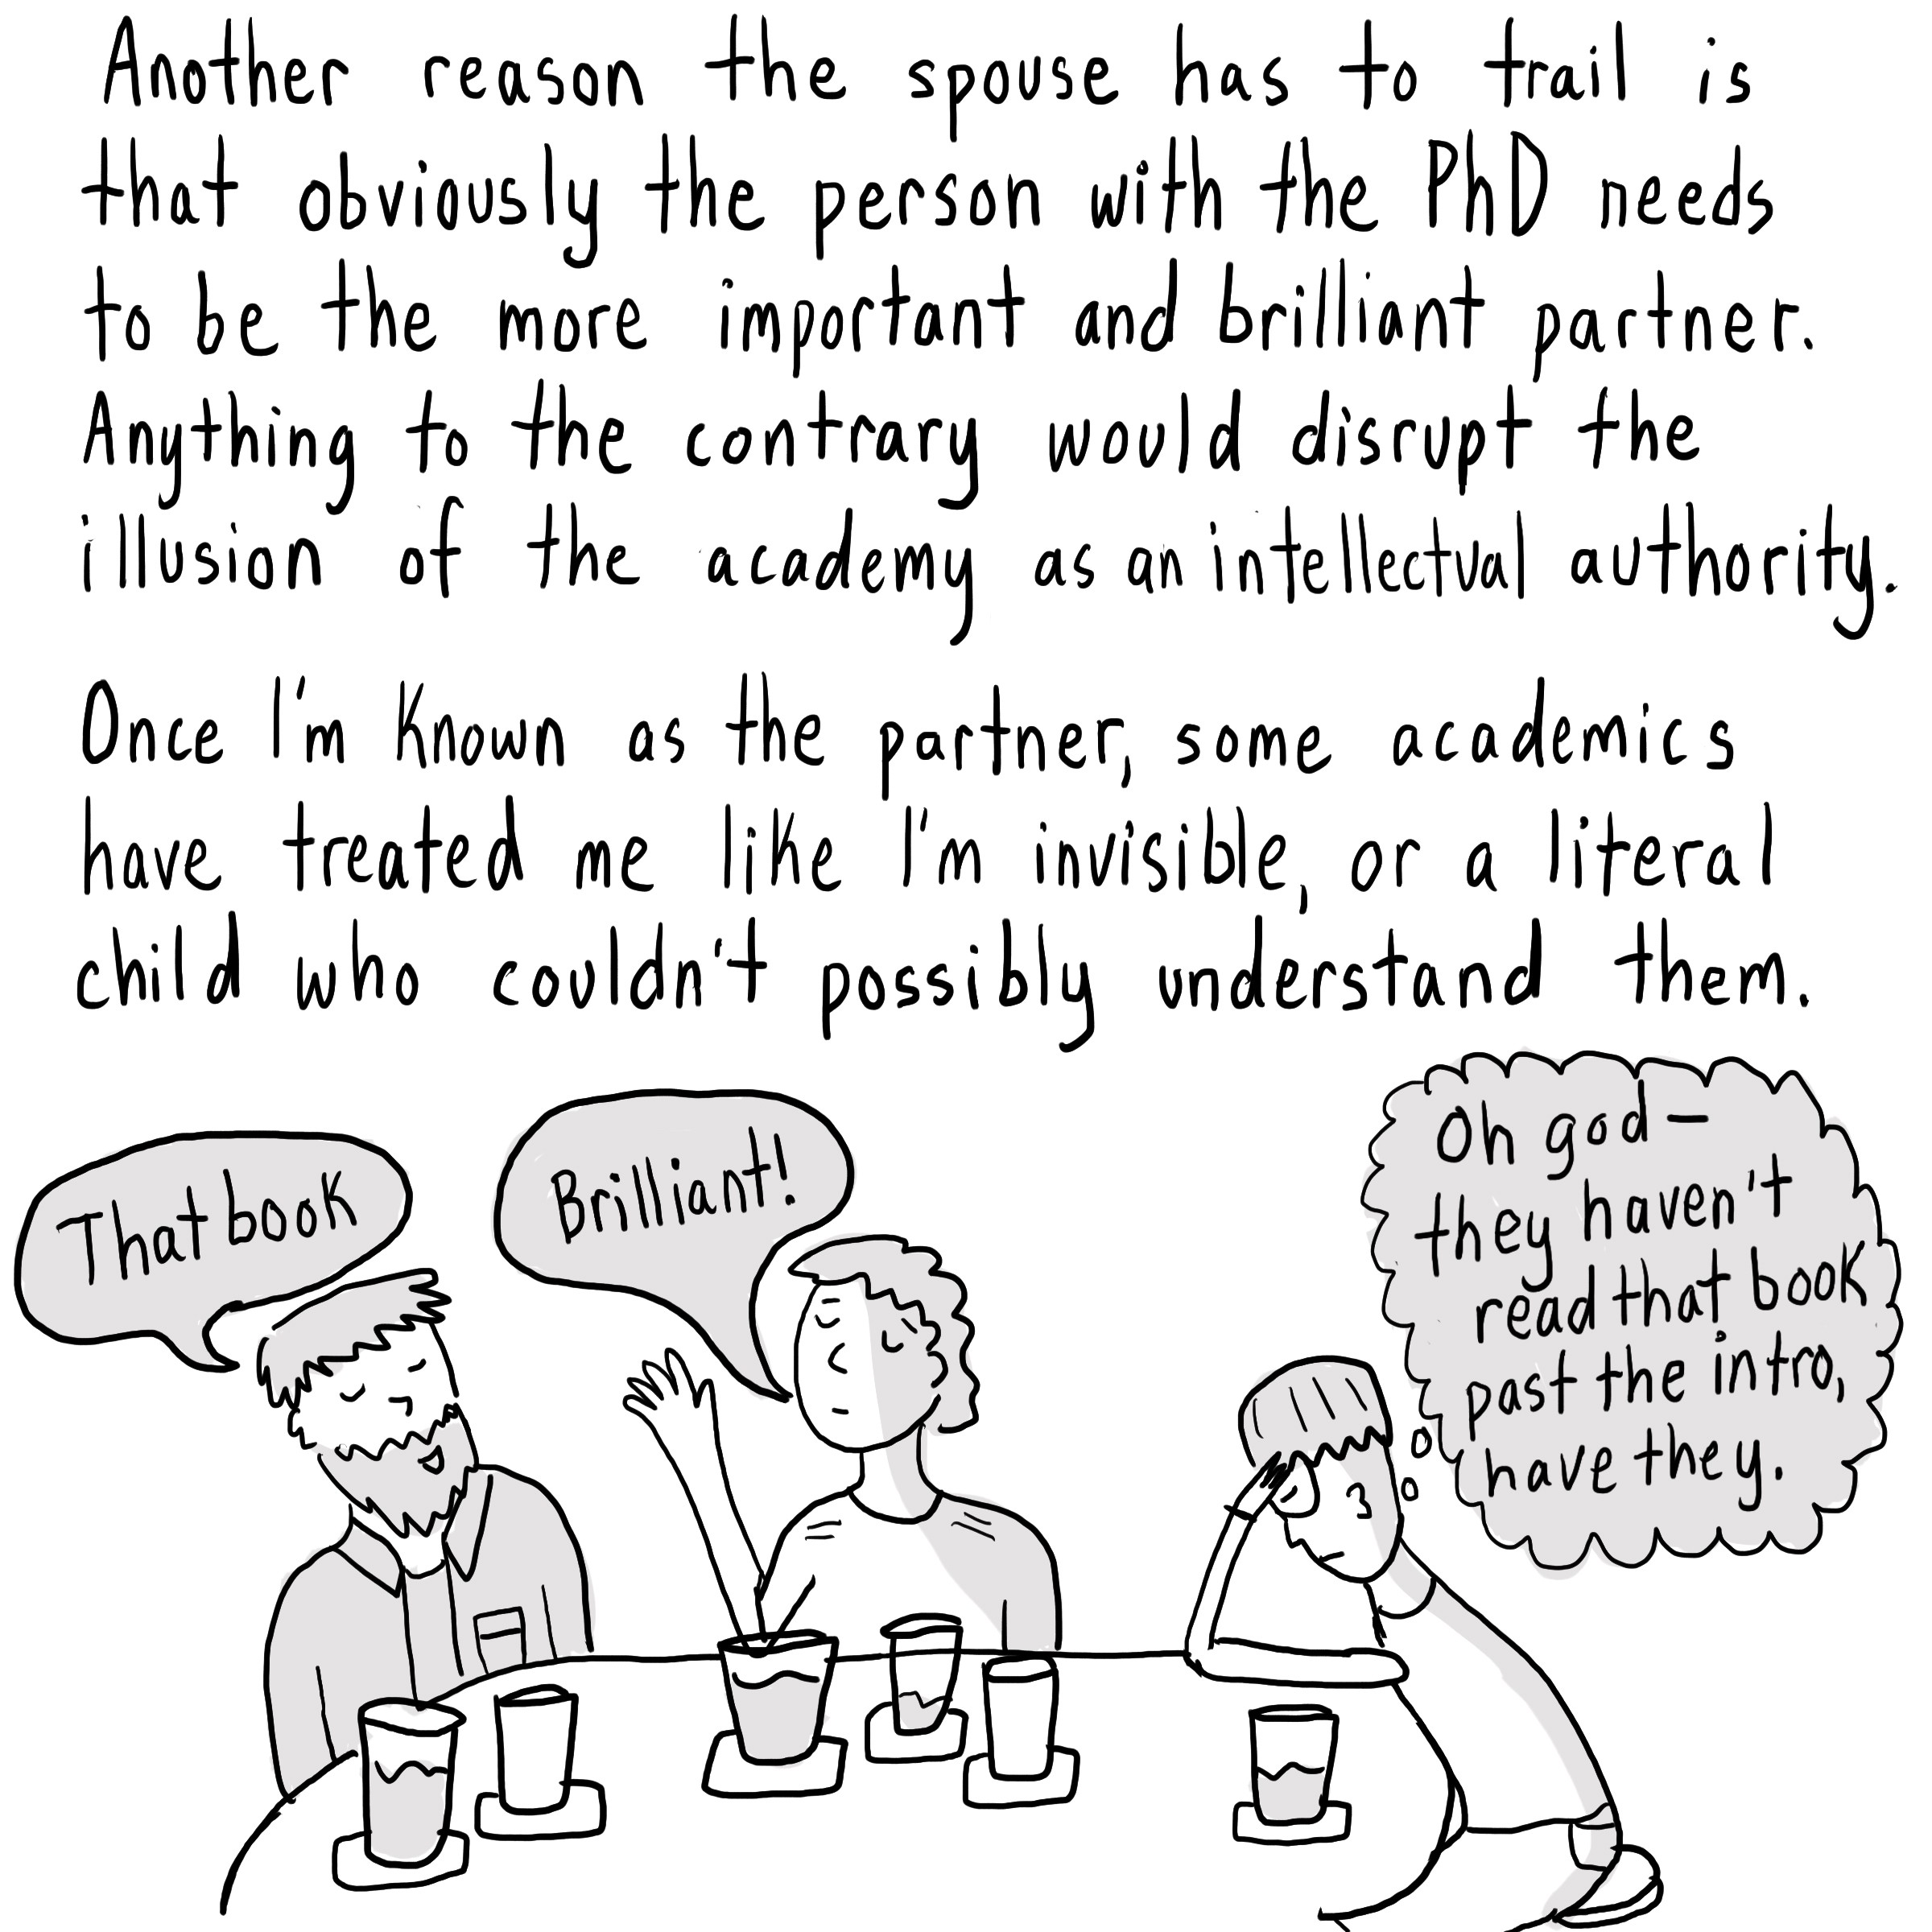 "Text: Another reason the spouse has to trail is that obviously the person with the PhD needs to be the most important and brilliant partner. Anything to the contrary would disrupt the illusion of the academy as an intellectual authority. Once I'm known as the partner, some academics have treated me like I'm invisible or a literal child who couldn't possibly understand them. [2 people saying ""That book"" and ""Brilliant!""—and another thinking, ""Oh god they haven't read past the intro, have they.""]"